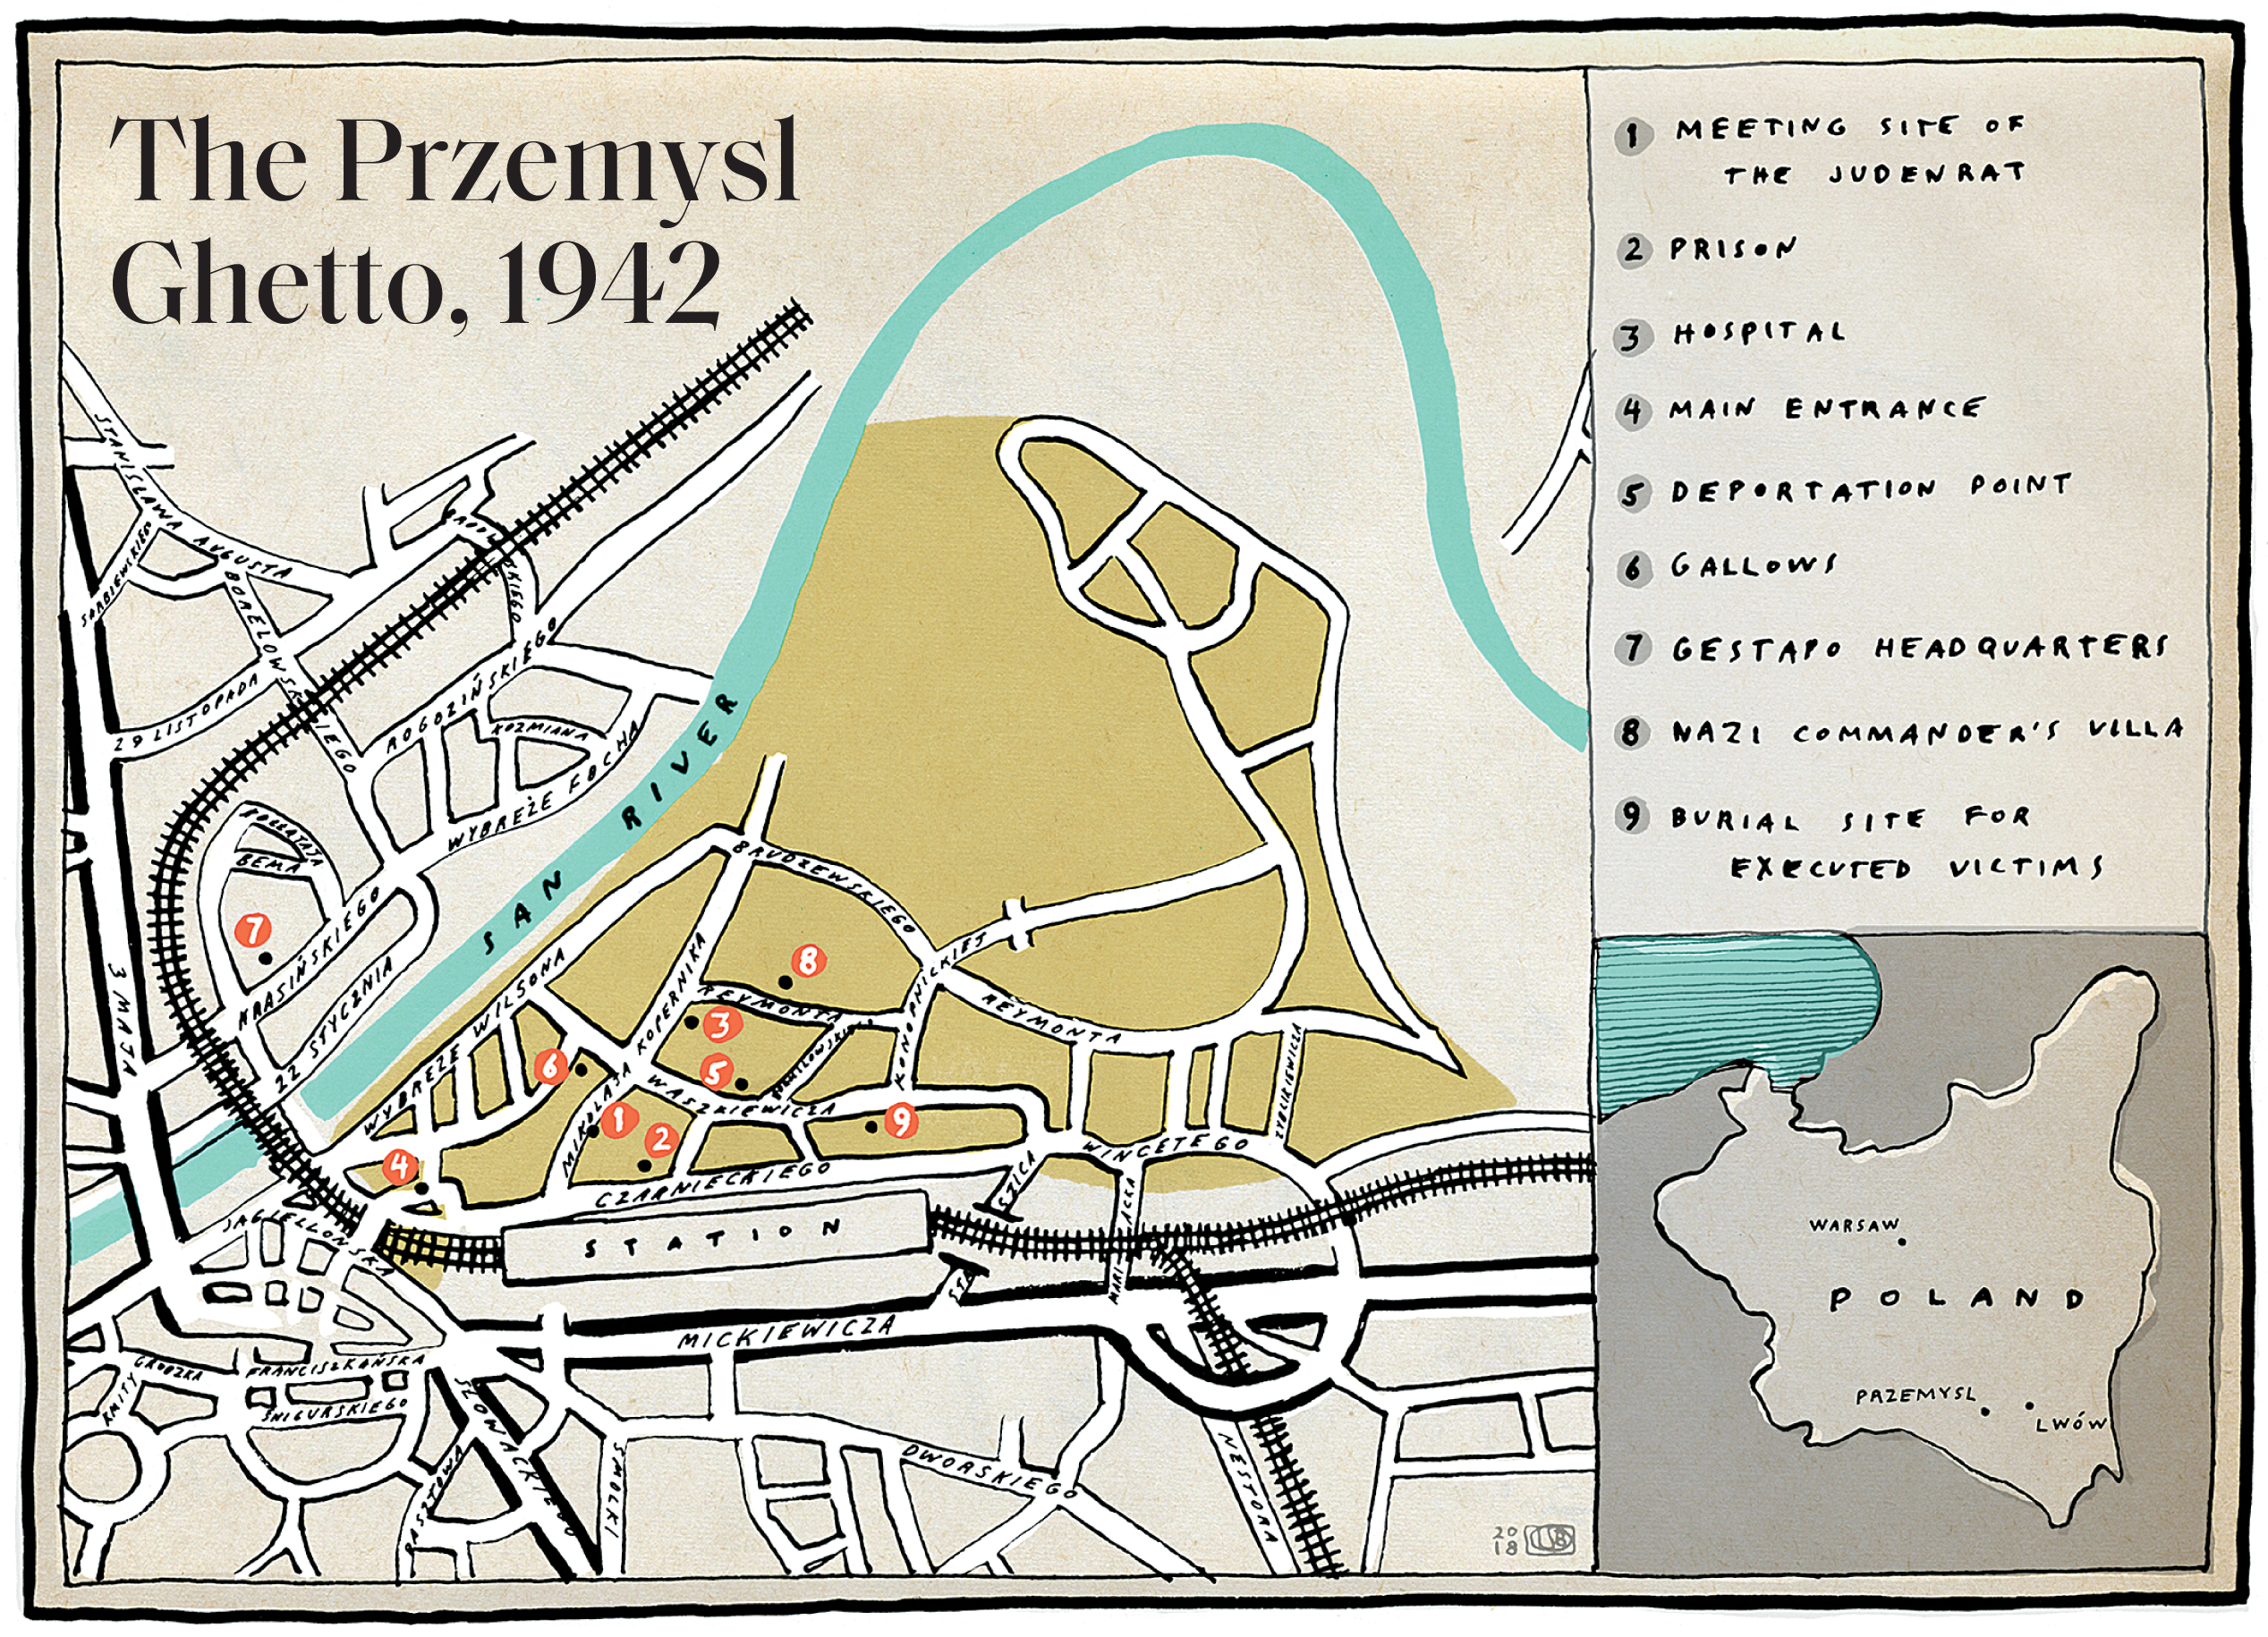 Map of Przemsyl Ghetto, 1942